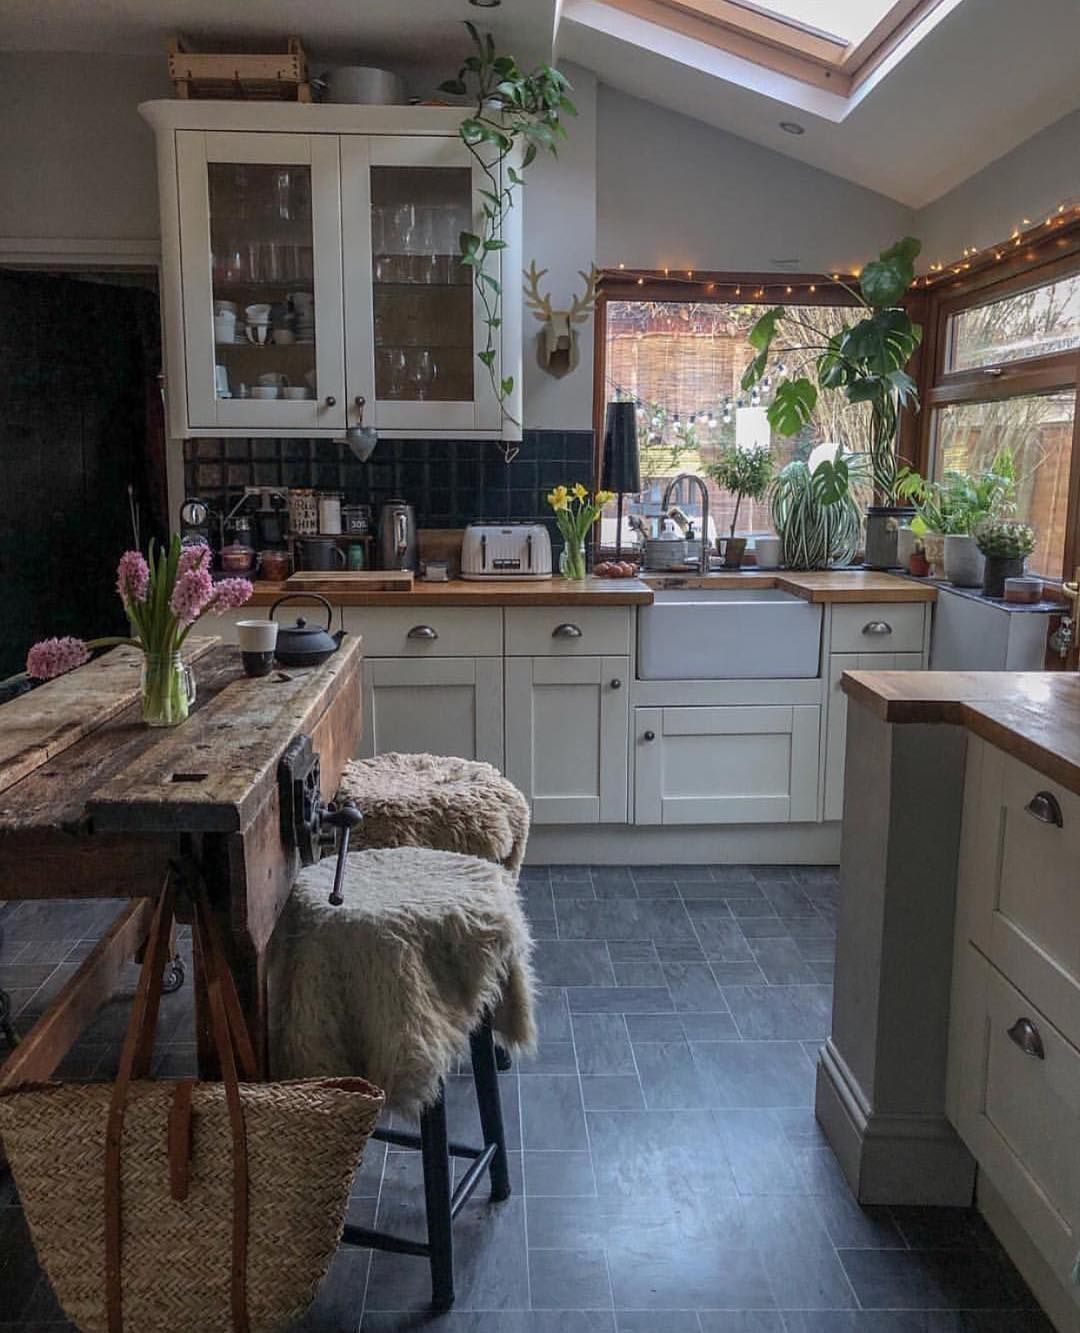 Oh my word a plant kitchen